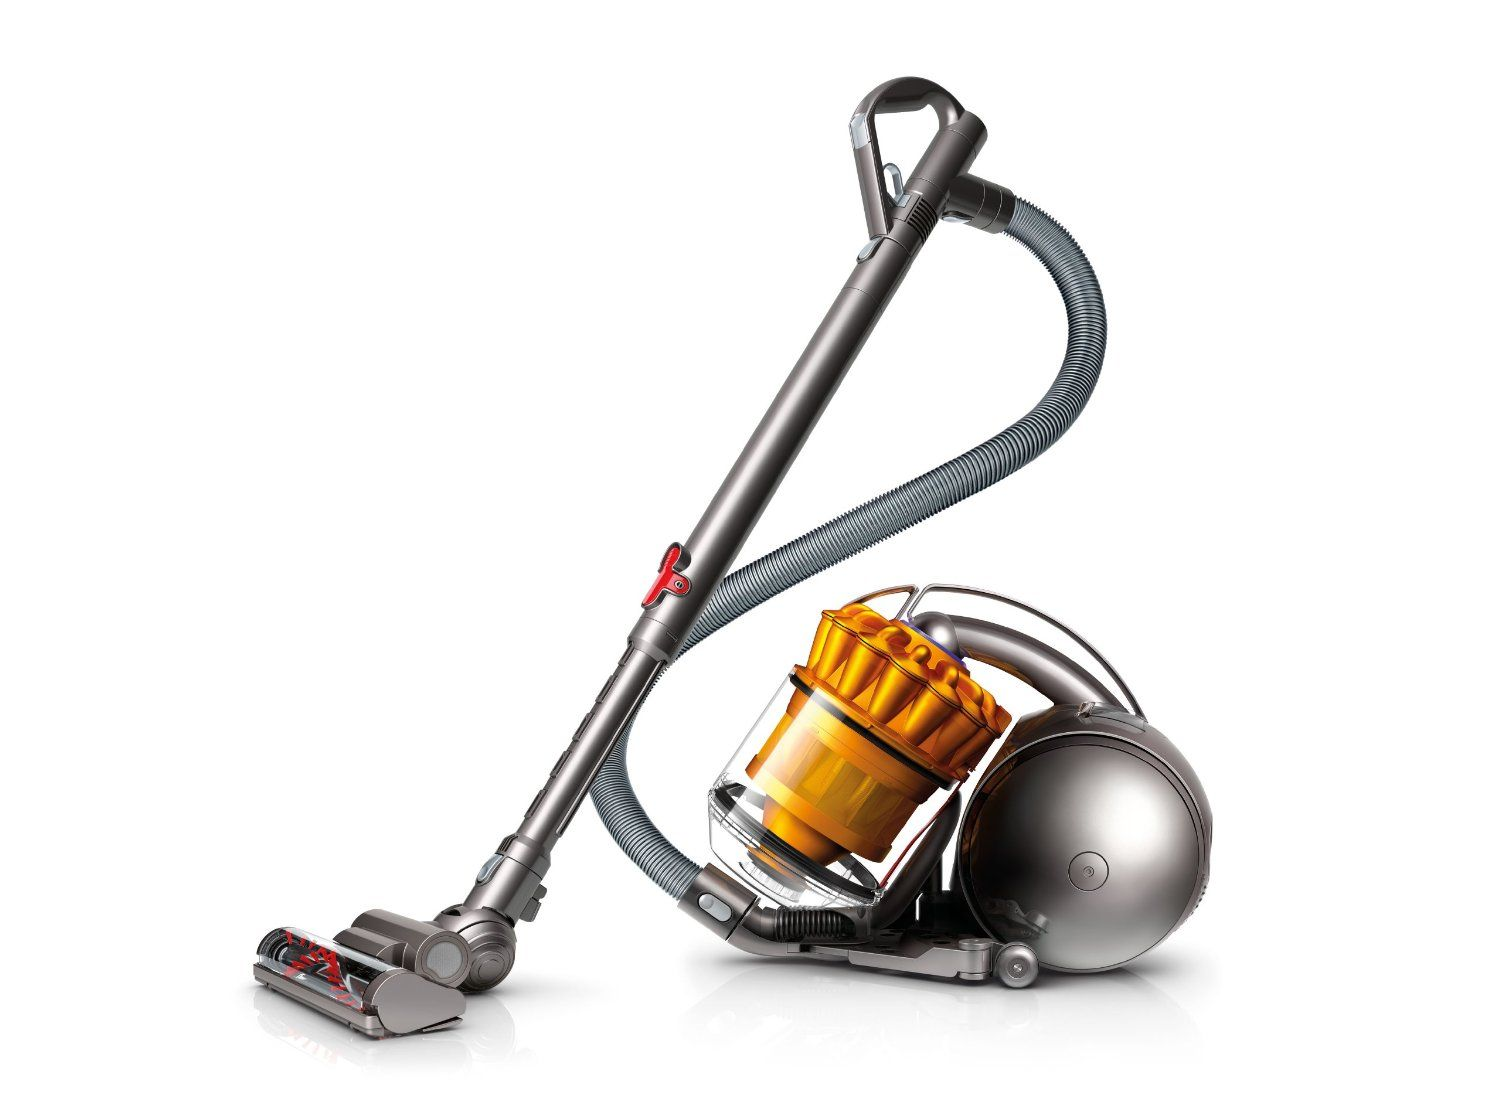 Amazon dyson dc39 multi floor canister vacuum cleaner amazon dyson dc39 multi floor canister vacuum cleaner clearance dailygadgetfo Image collections